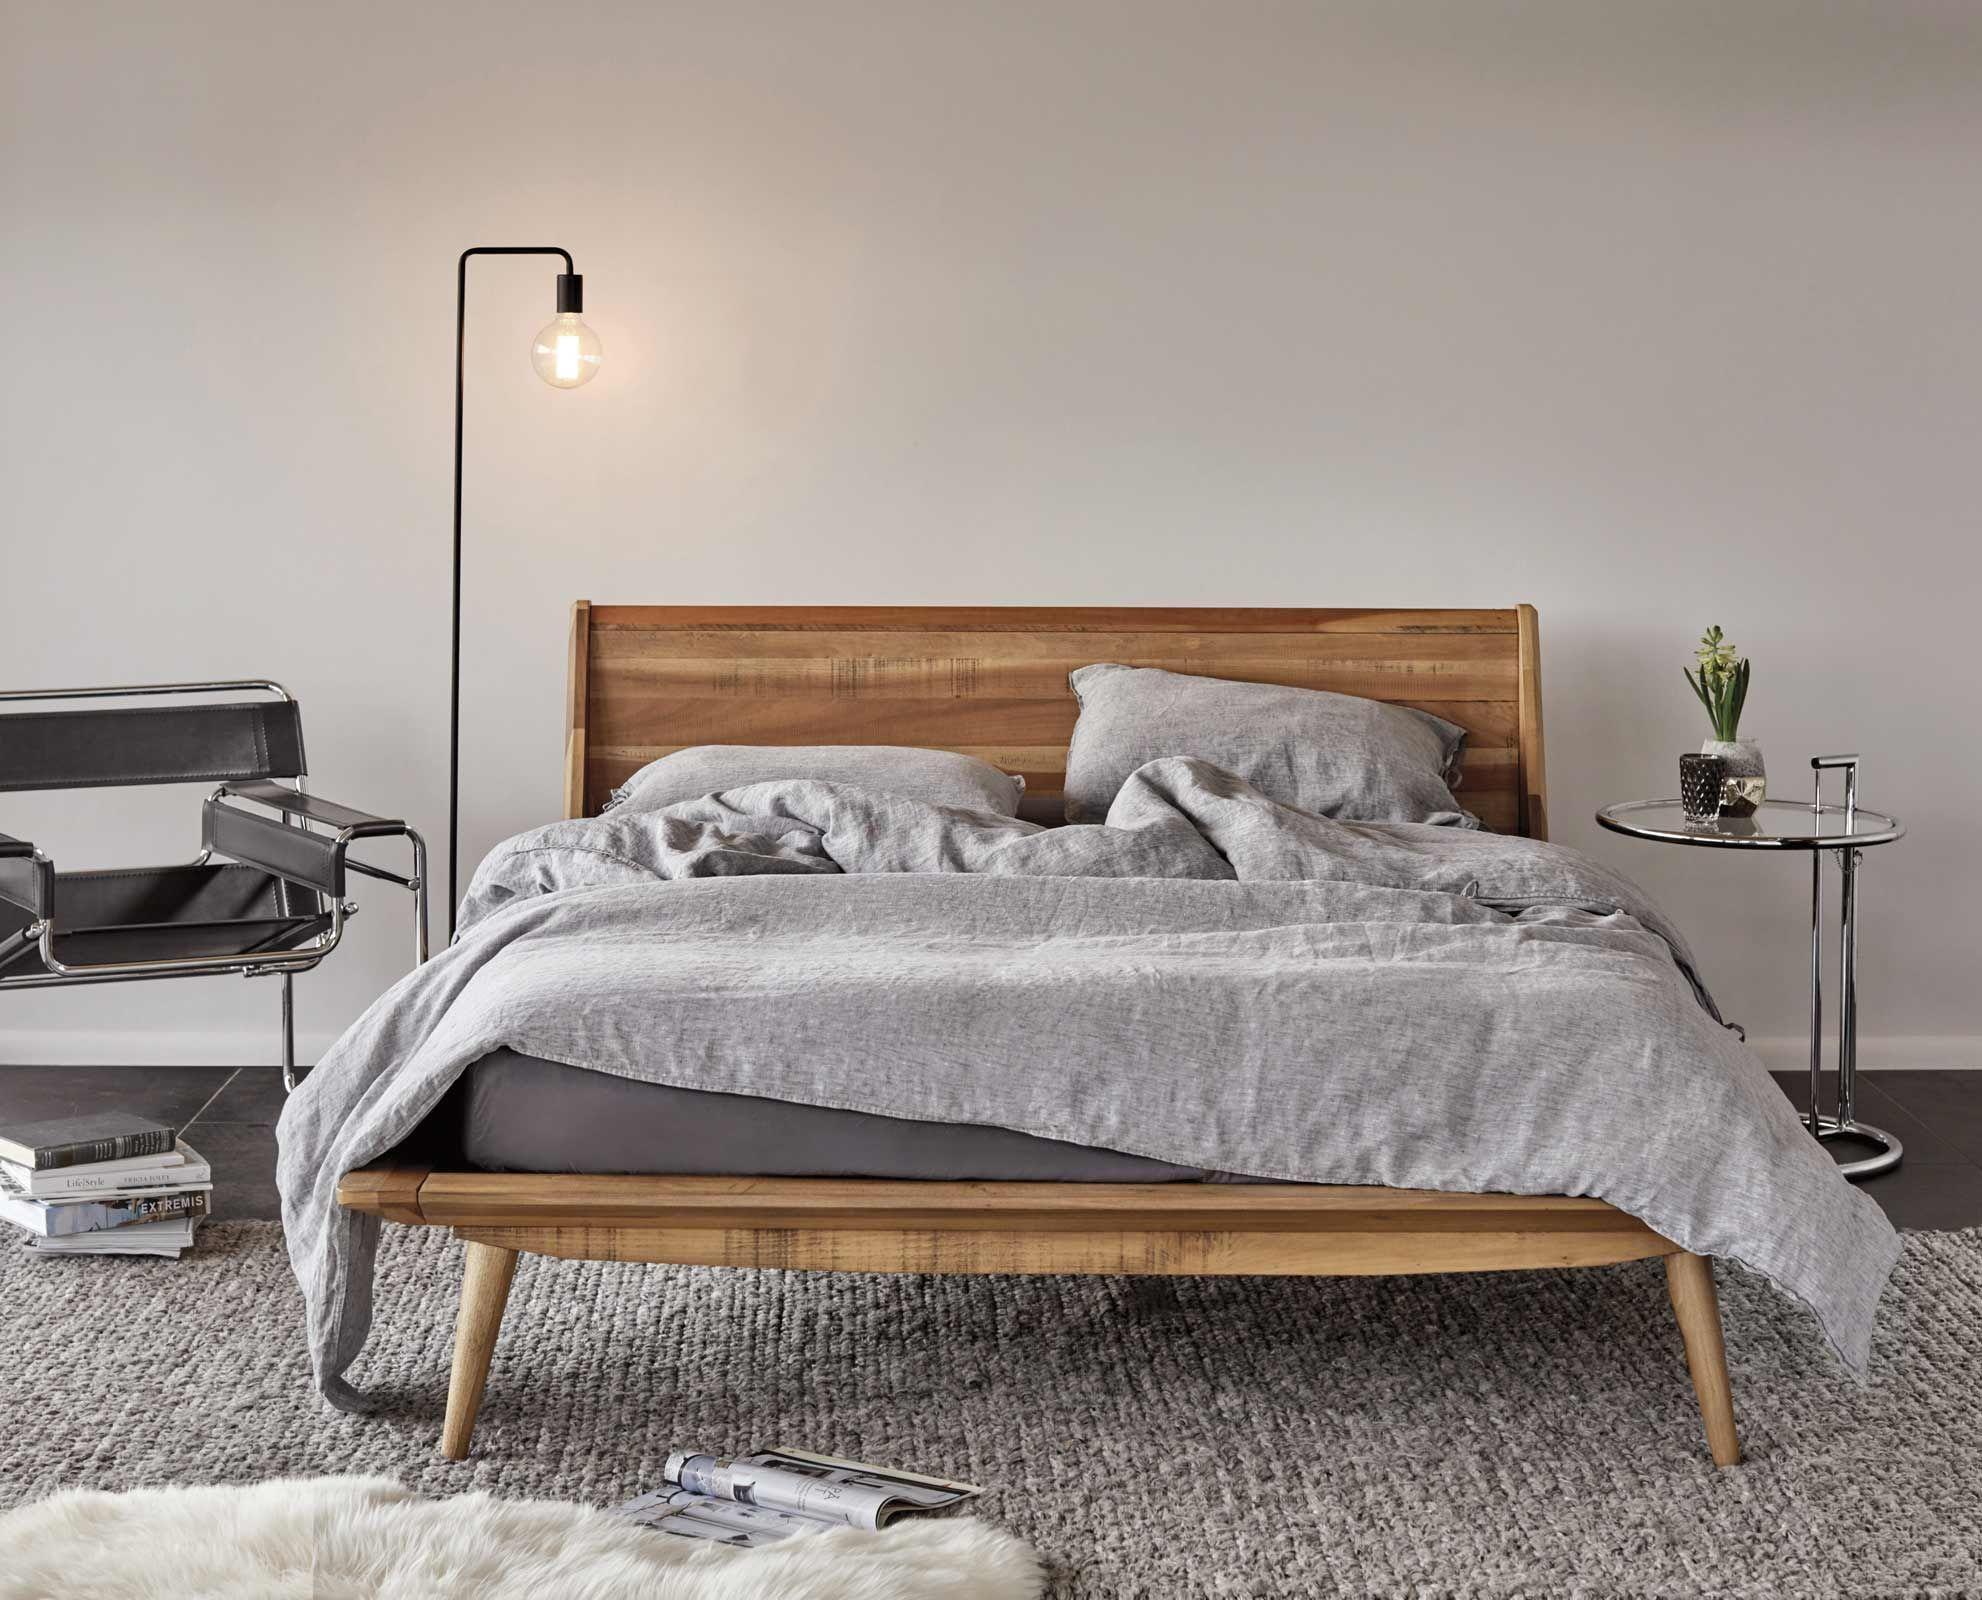 Dania The Nordic Inspired Bolig Bed Is Crafted From Solid Poplar And Features A Warm Stai Scandinavian Design Bedroom Modern Apartment Decor Bedroom Interior